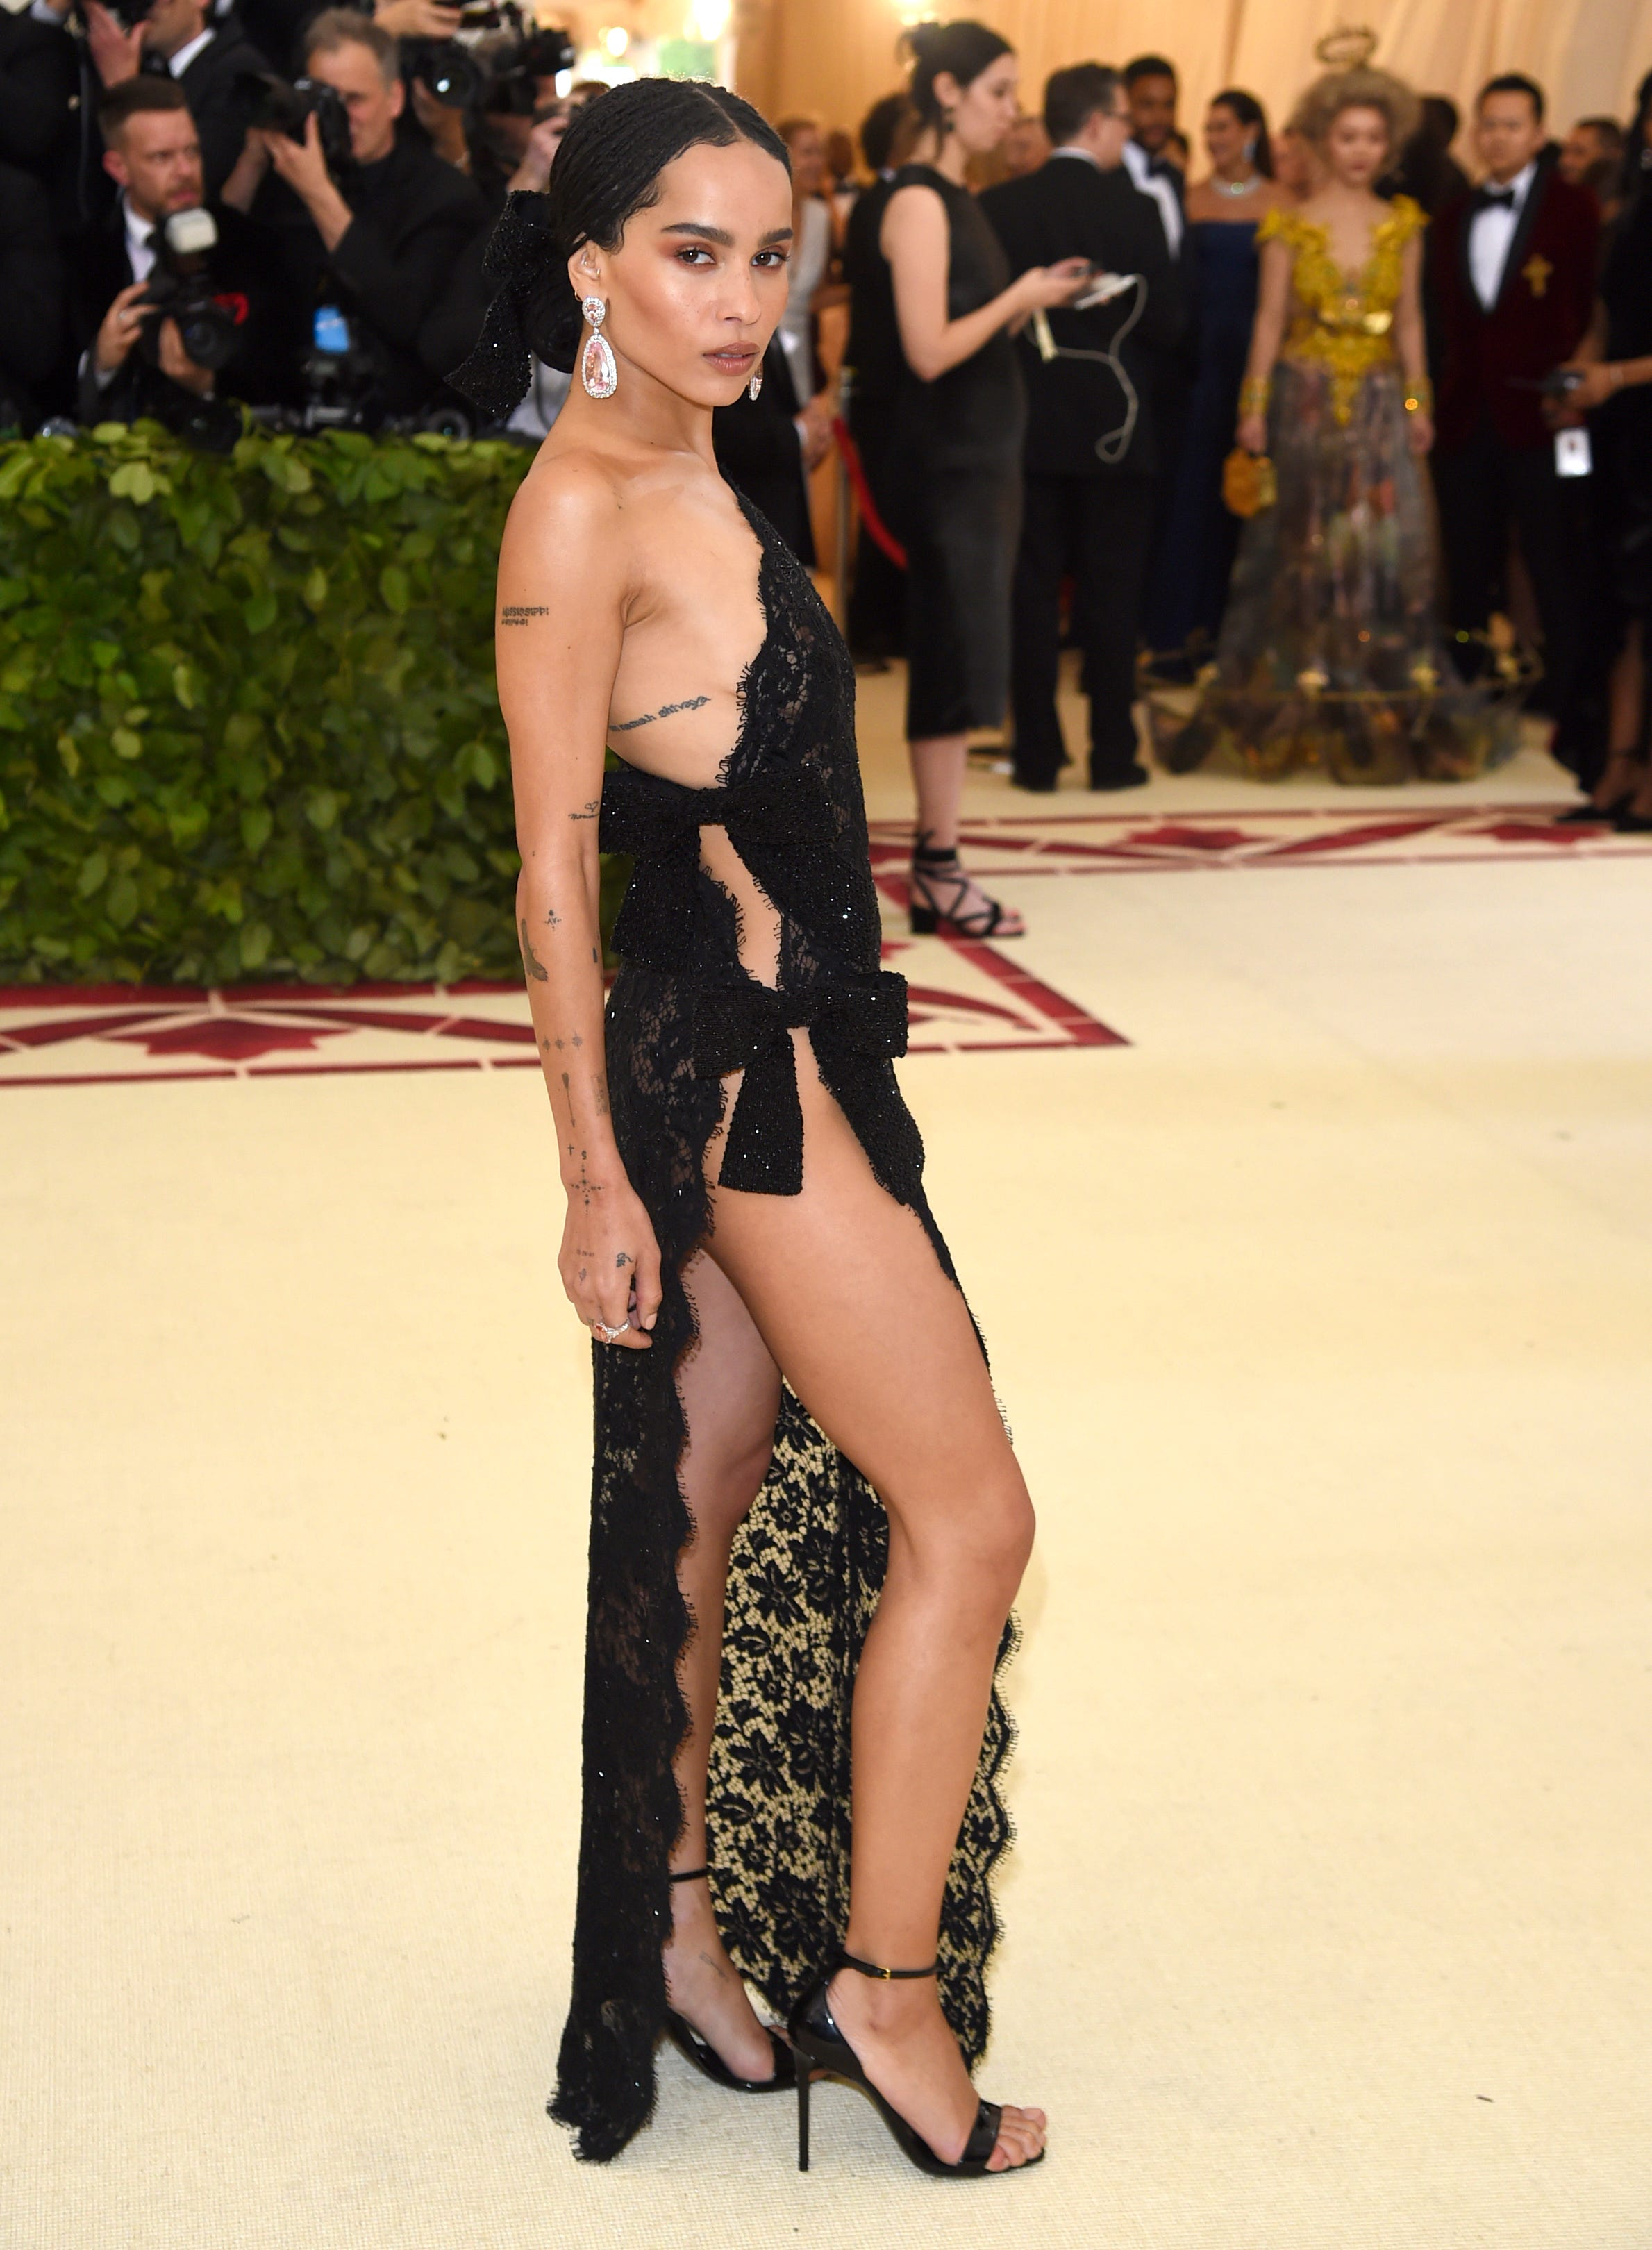 Zoe Kravitz says a director sexually harassed her when she was 19, reveals she's engaged